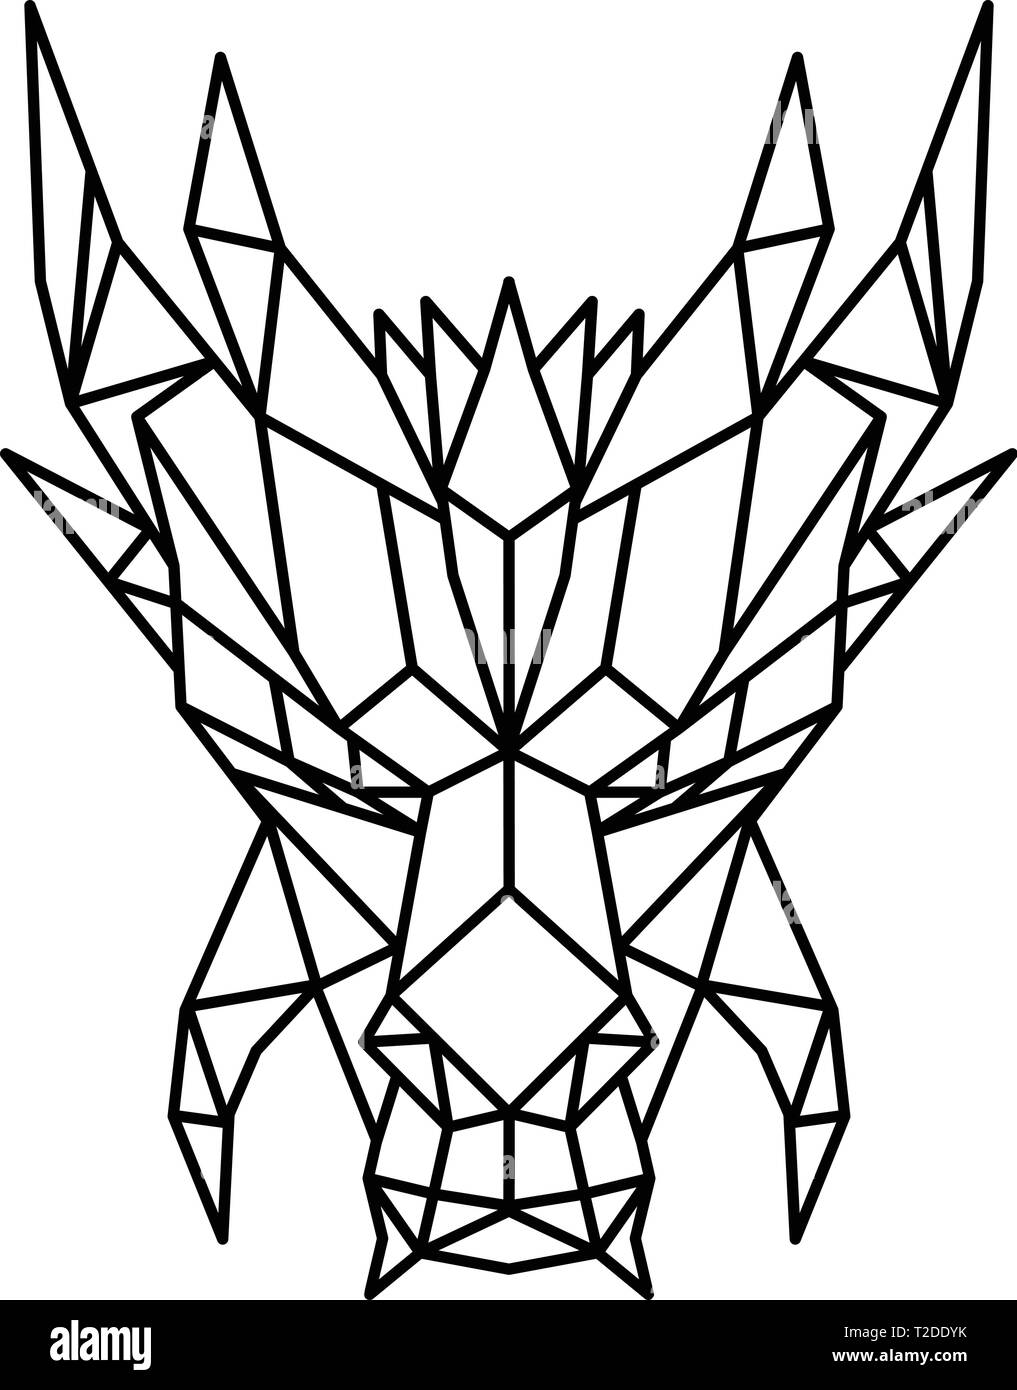 Low polygon style illustration of a head of a dragon, a serpent-like legendary creature that appears in folklore of many cultures viewed from front on - Stock Vector